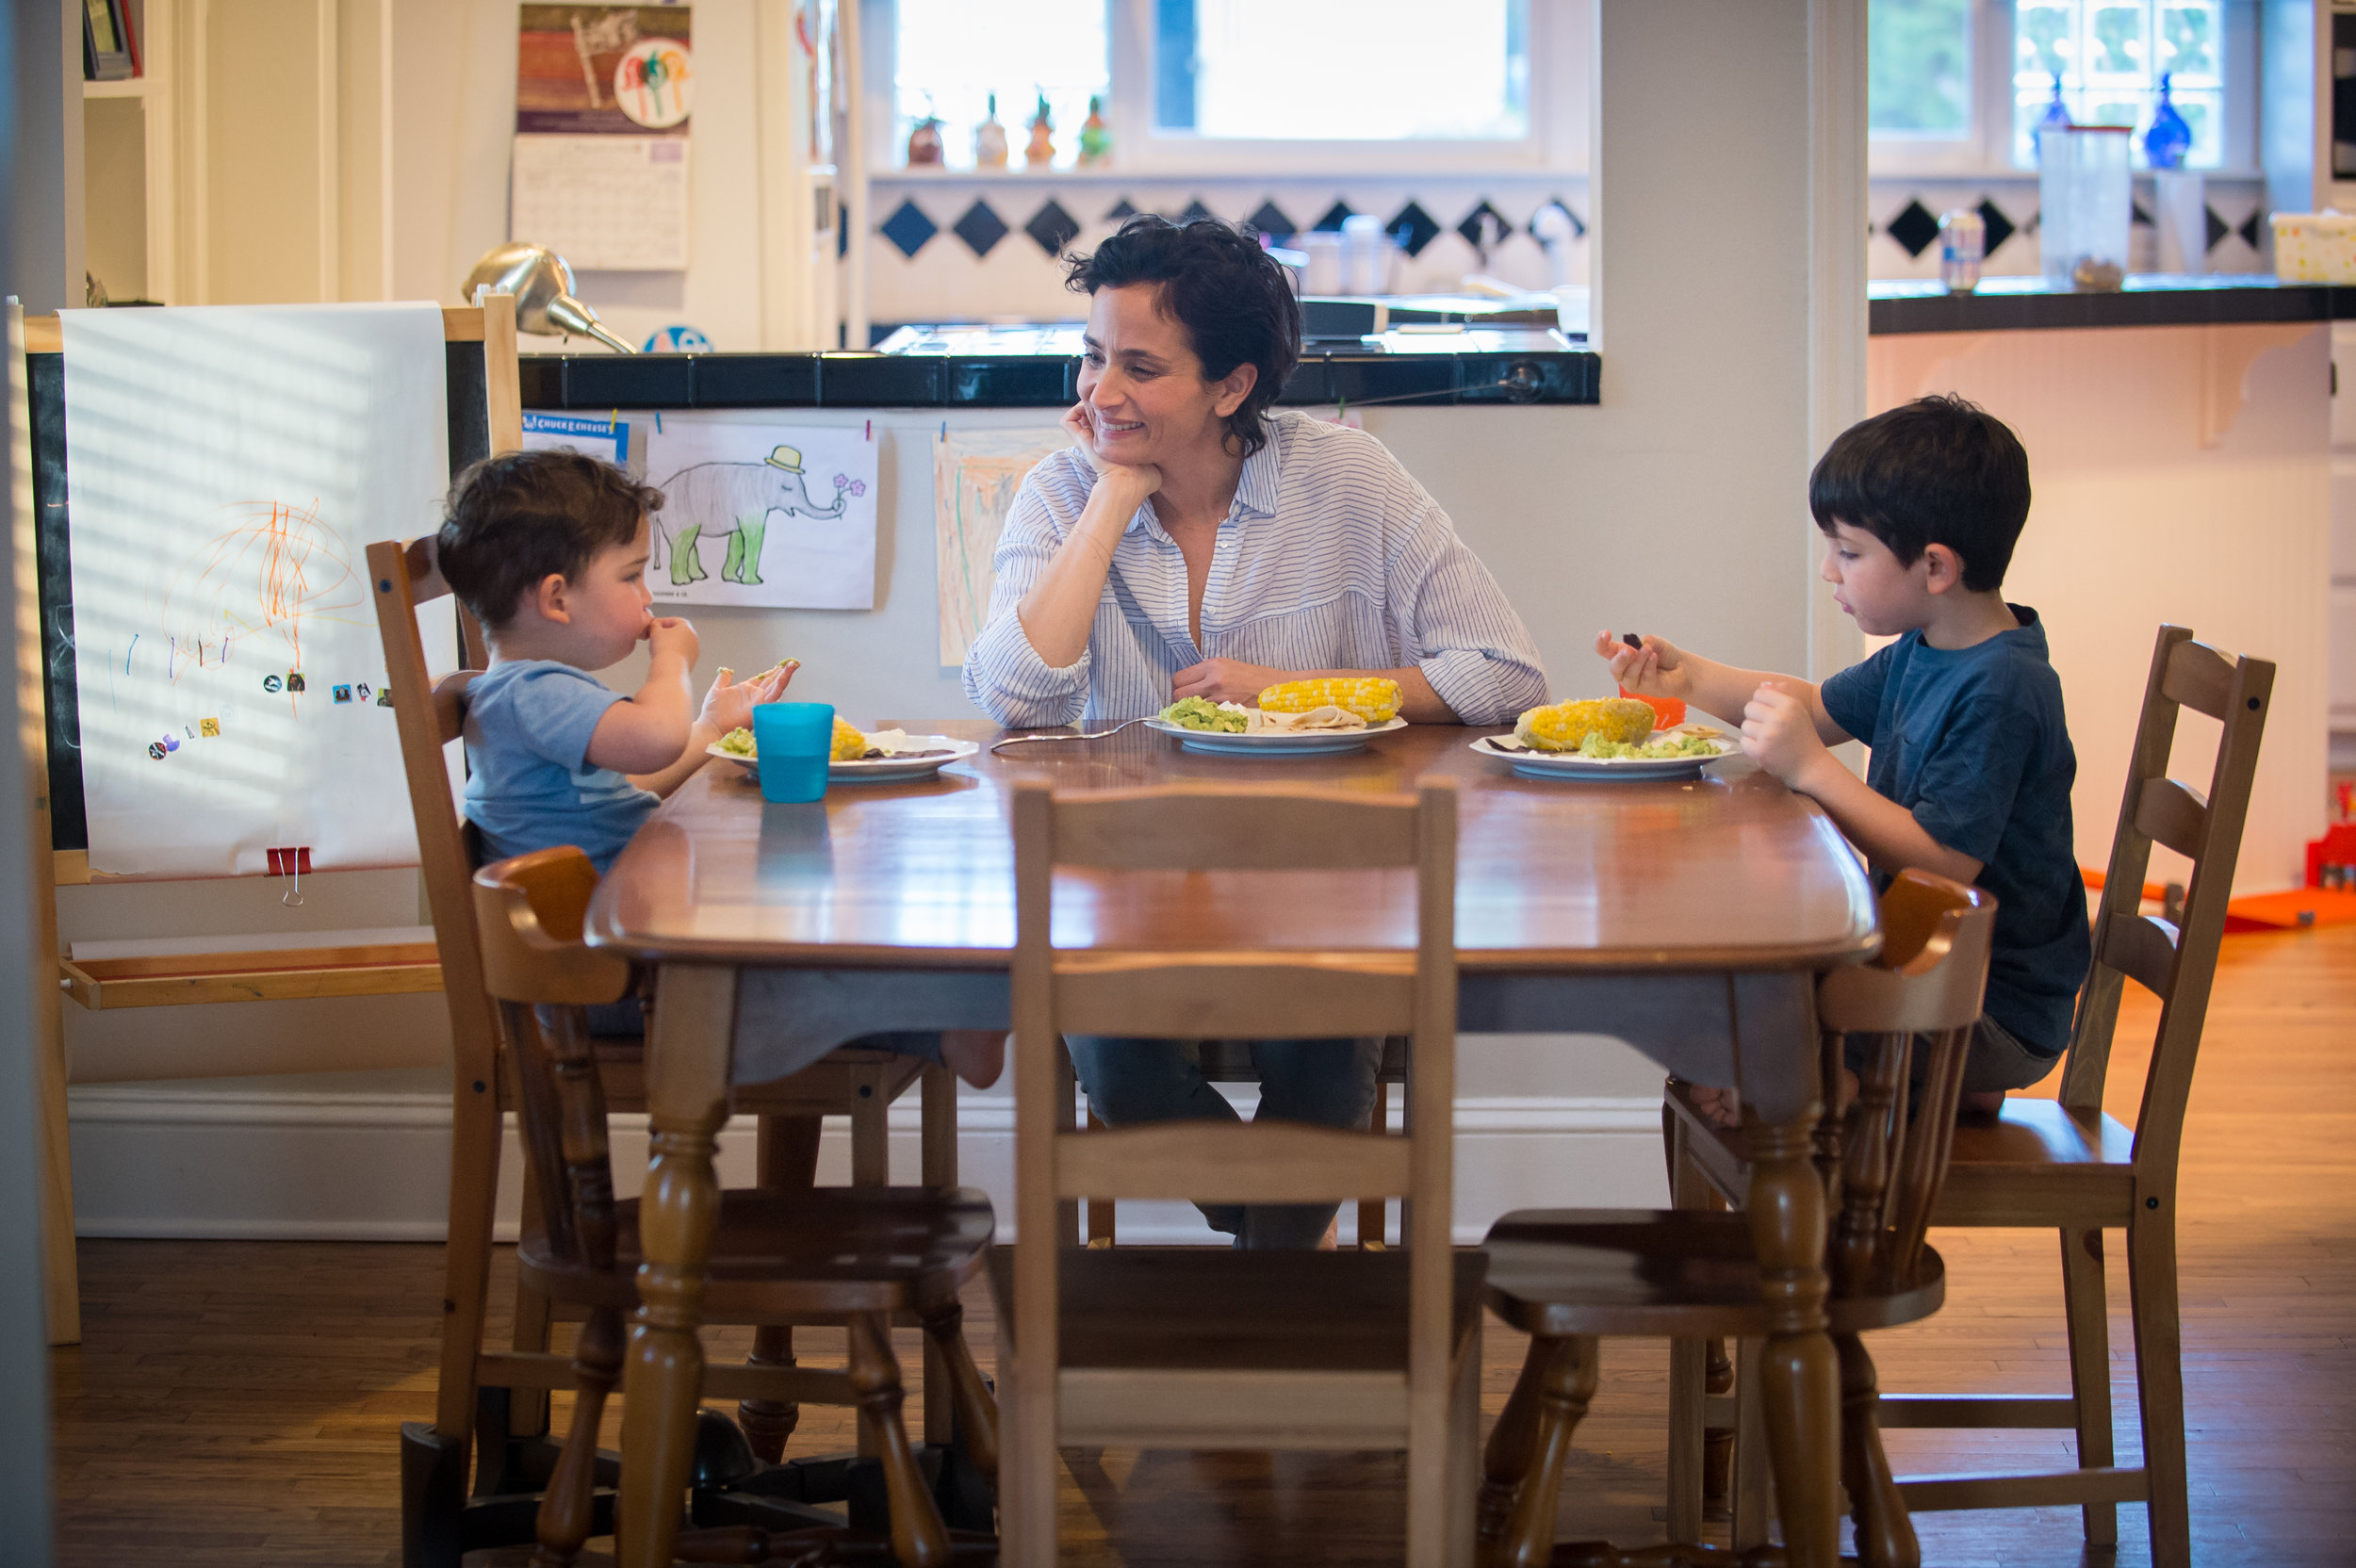 030418 DECATUR � Zoe Fishman Shacham (center) enjoys dinner with her sons (from left) Lev, 2, and Ari, 6, at their Decatur home Sunday, March 3, 2018.